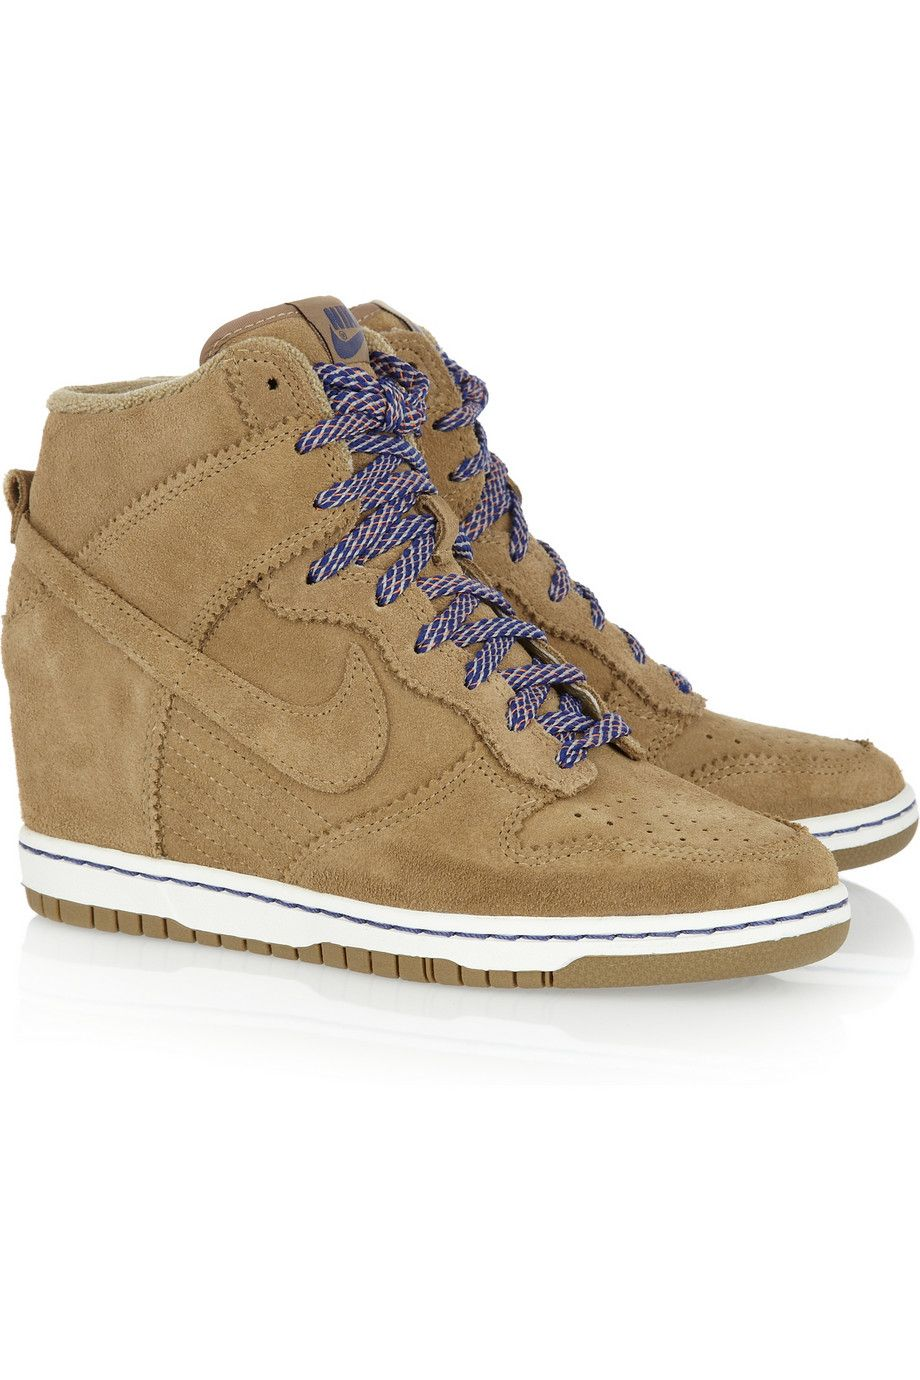 new product d3c8f 610b7 cheap nike womens sky hi dunk leopard 079c2 22d33  new zealand nike wedges.  def. getting these for spring pick them up at lady